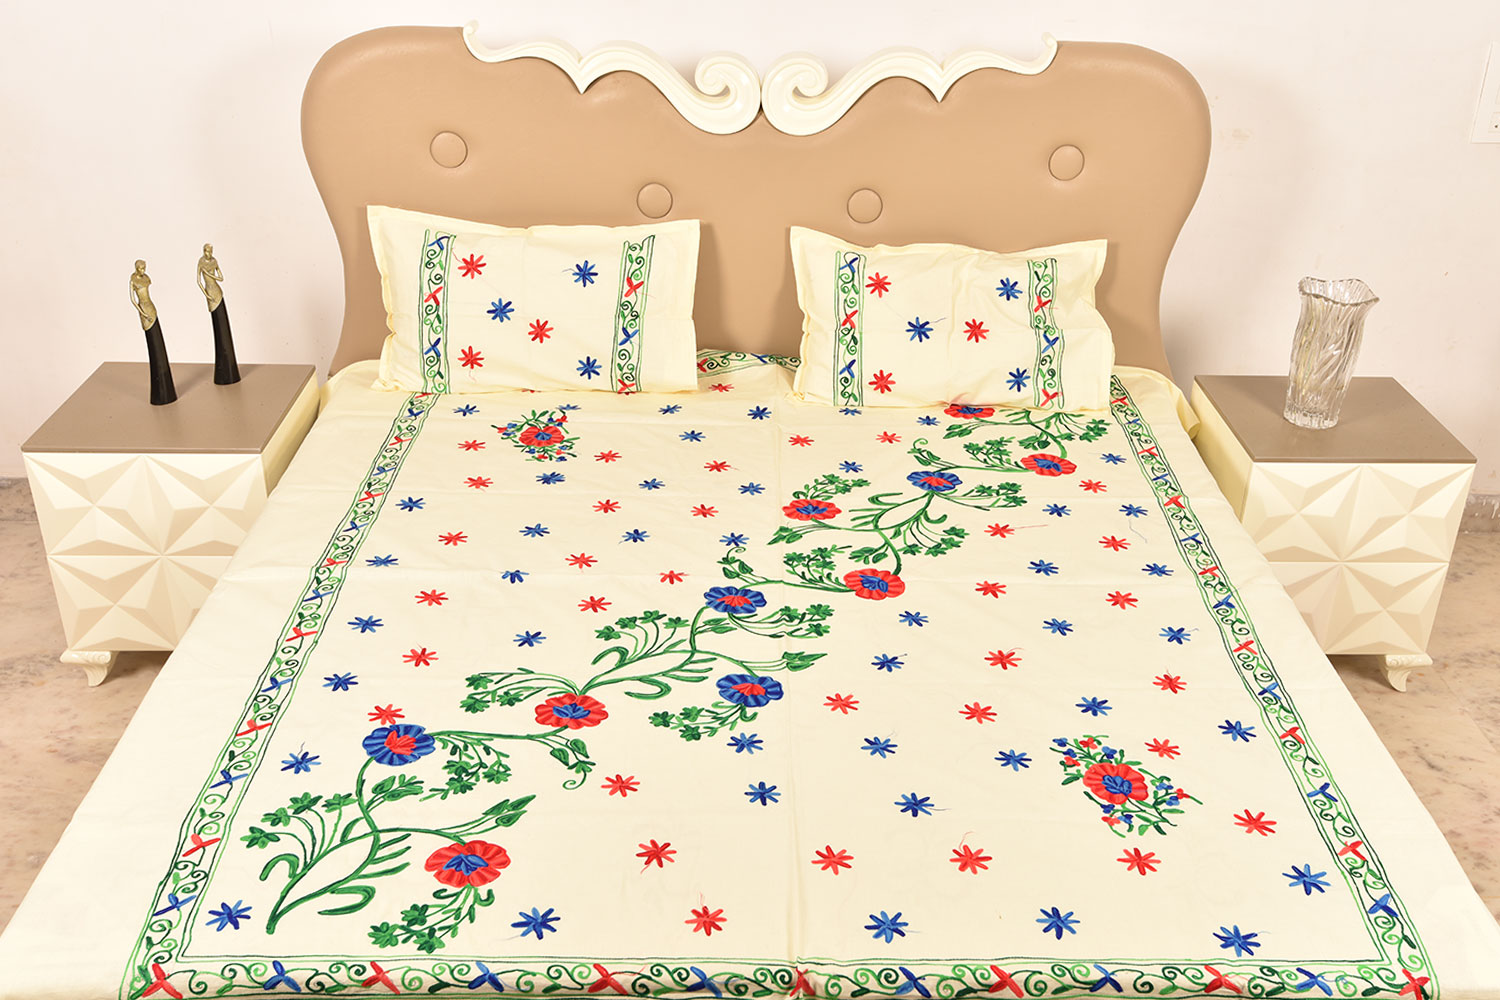 Handmade bed sheets design - Cream Handmade Double Bed Sheet Linen With Multicolor Floral Design Beautiful Decorative Stylish